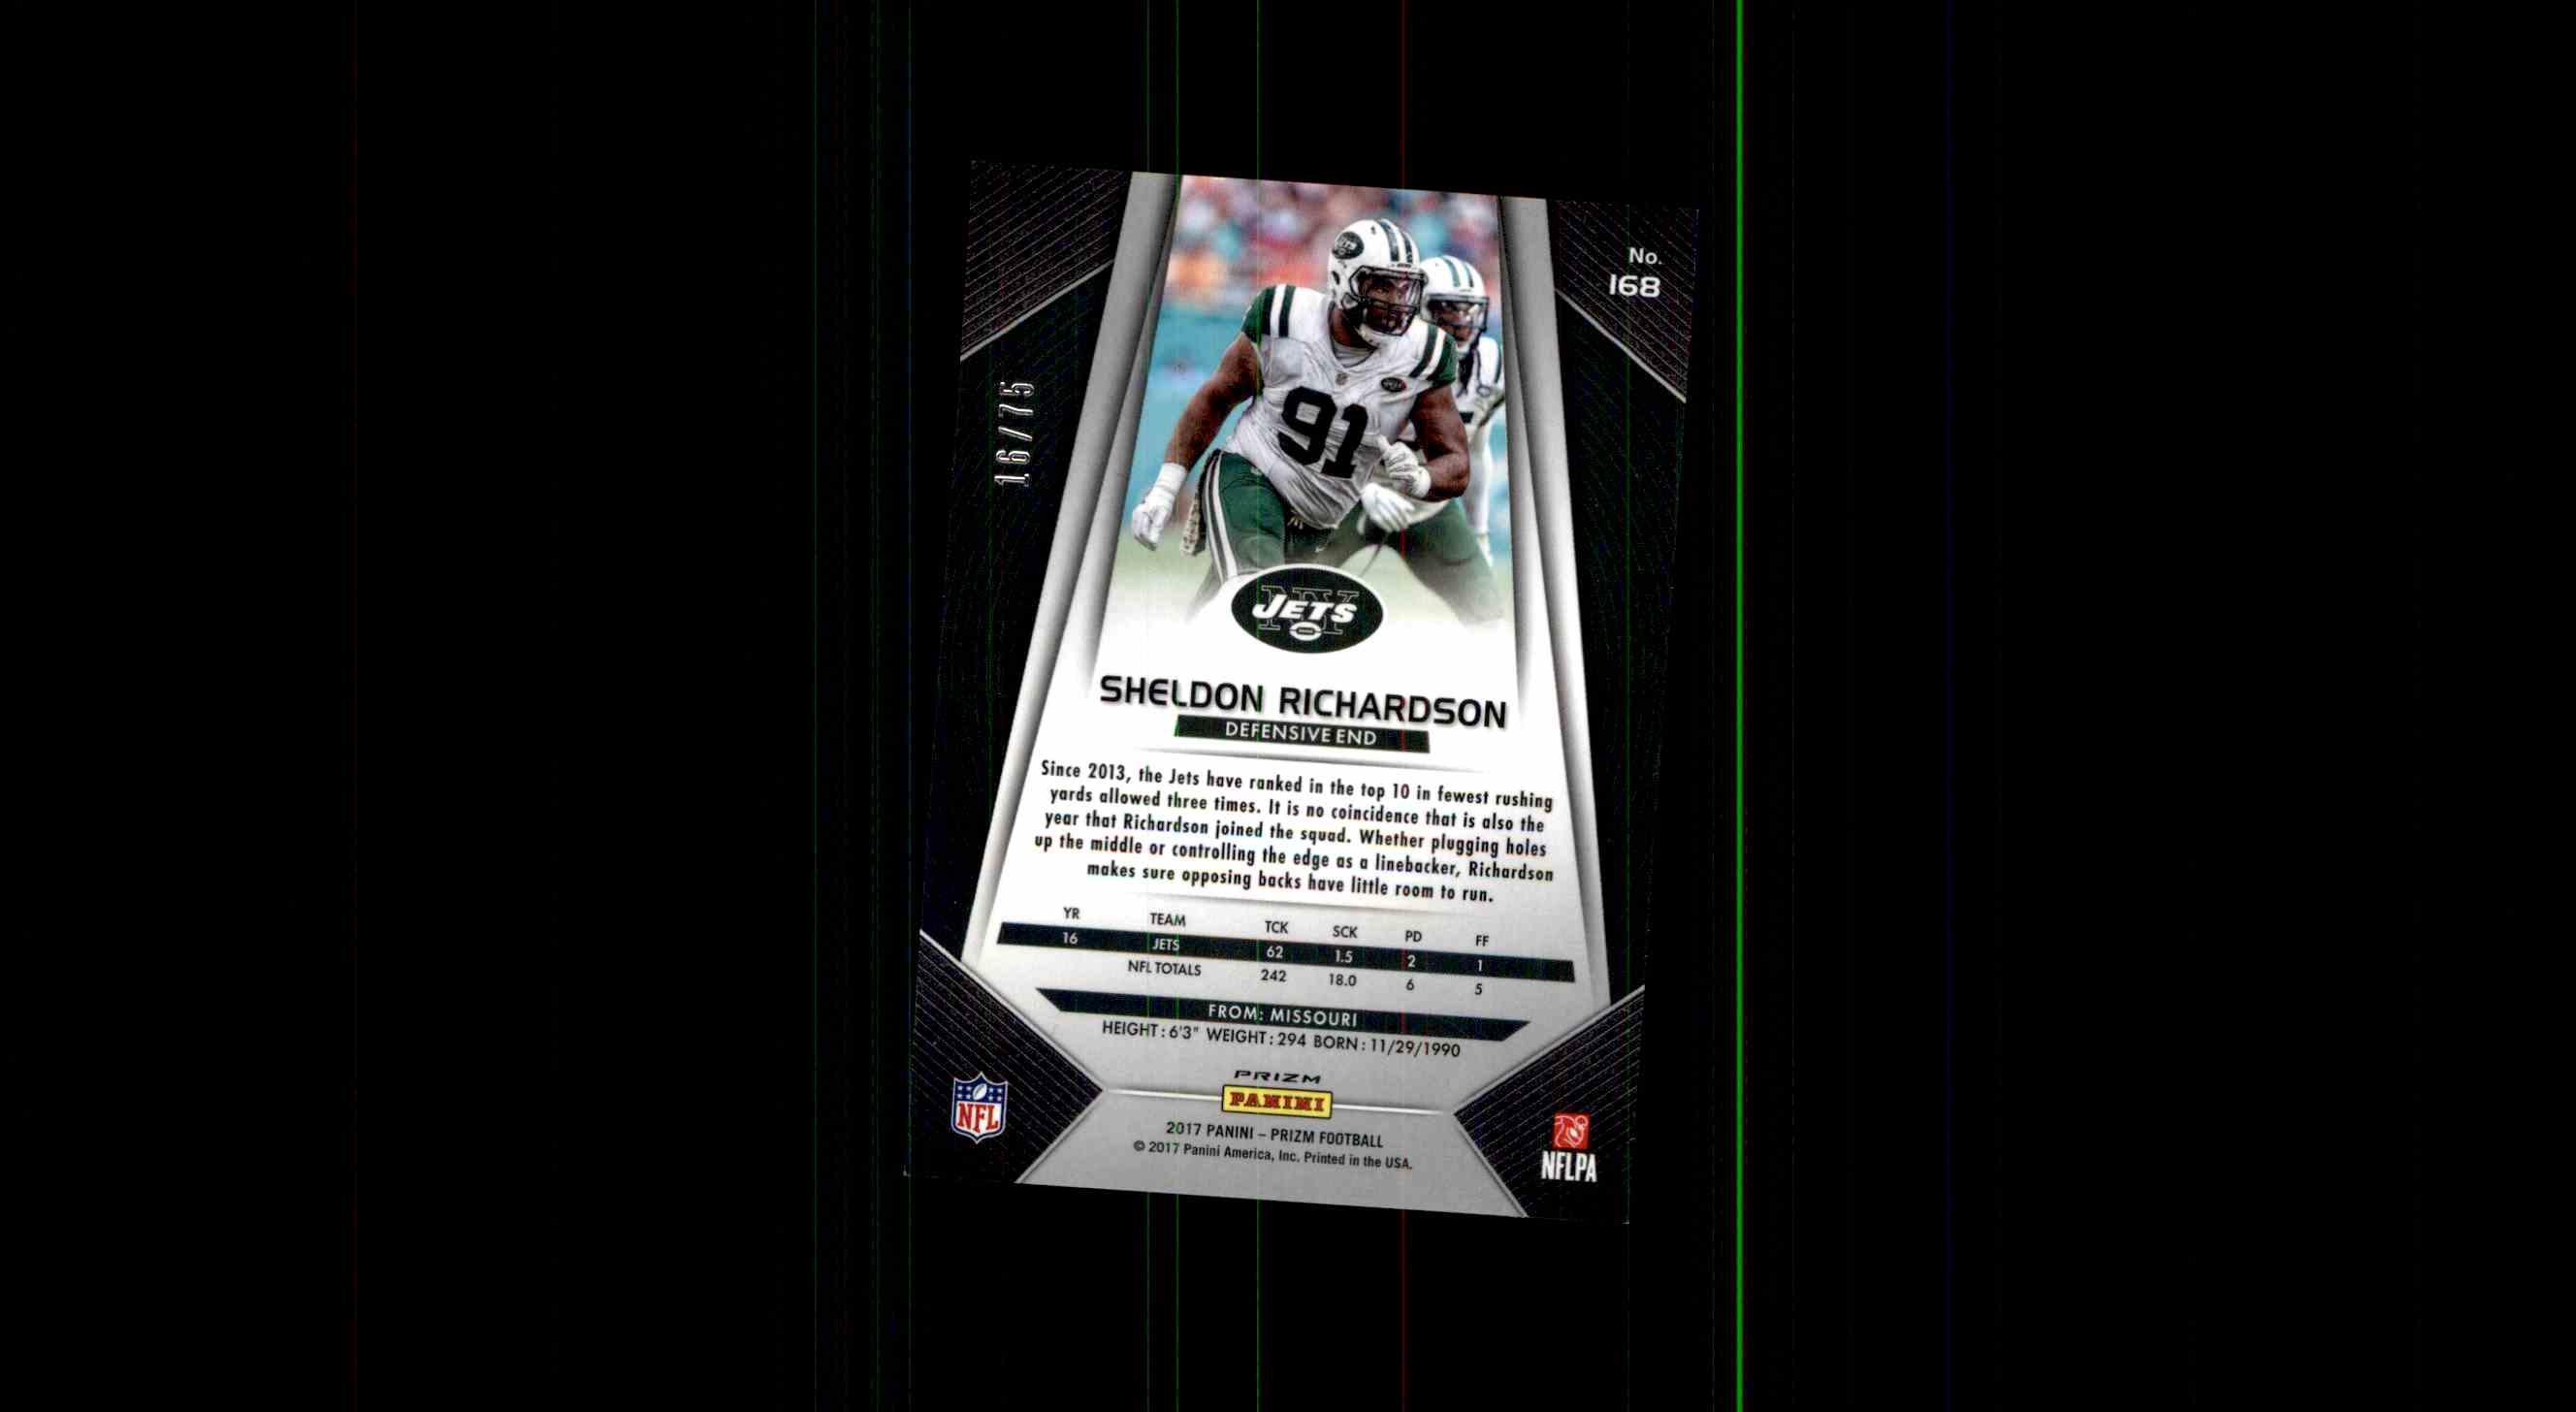 2017 Prizm Sheldon Richardson card back image